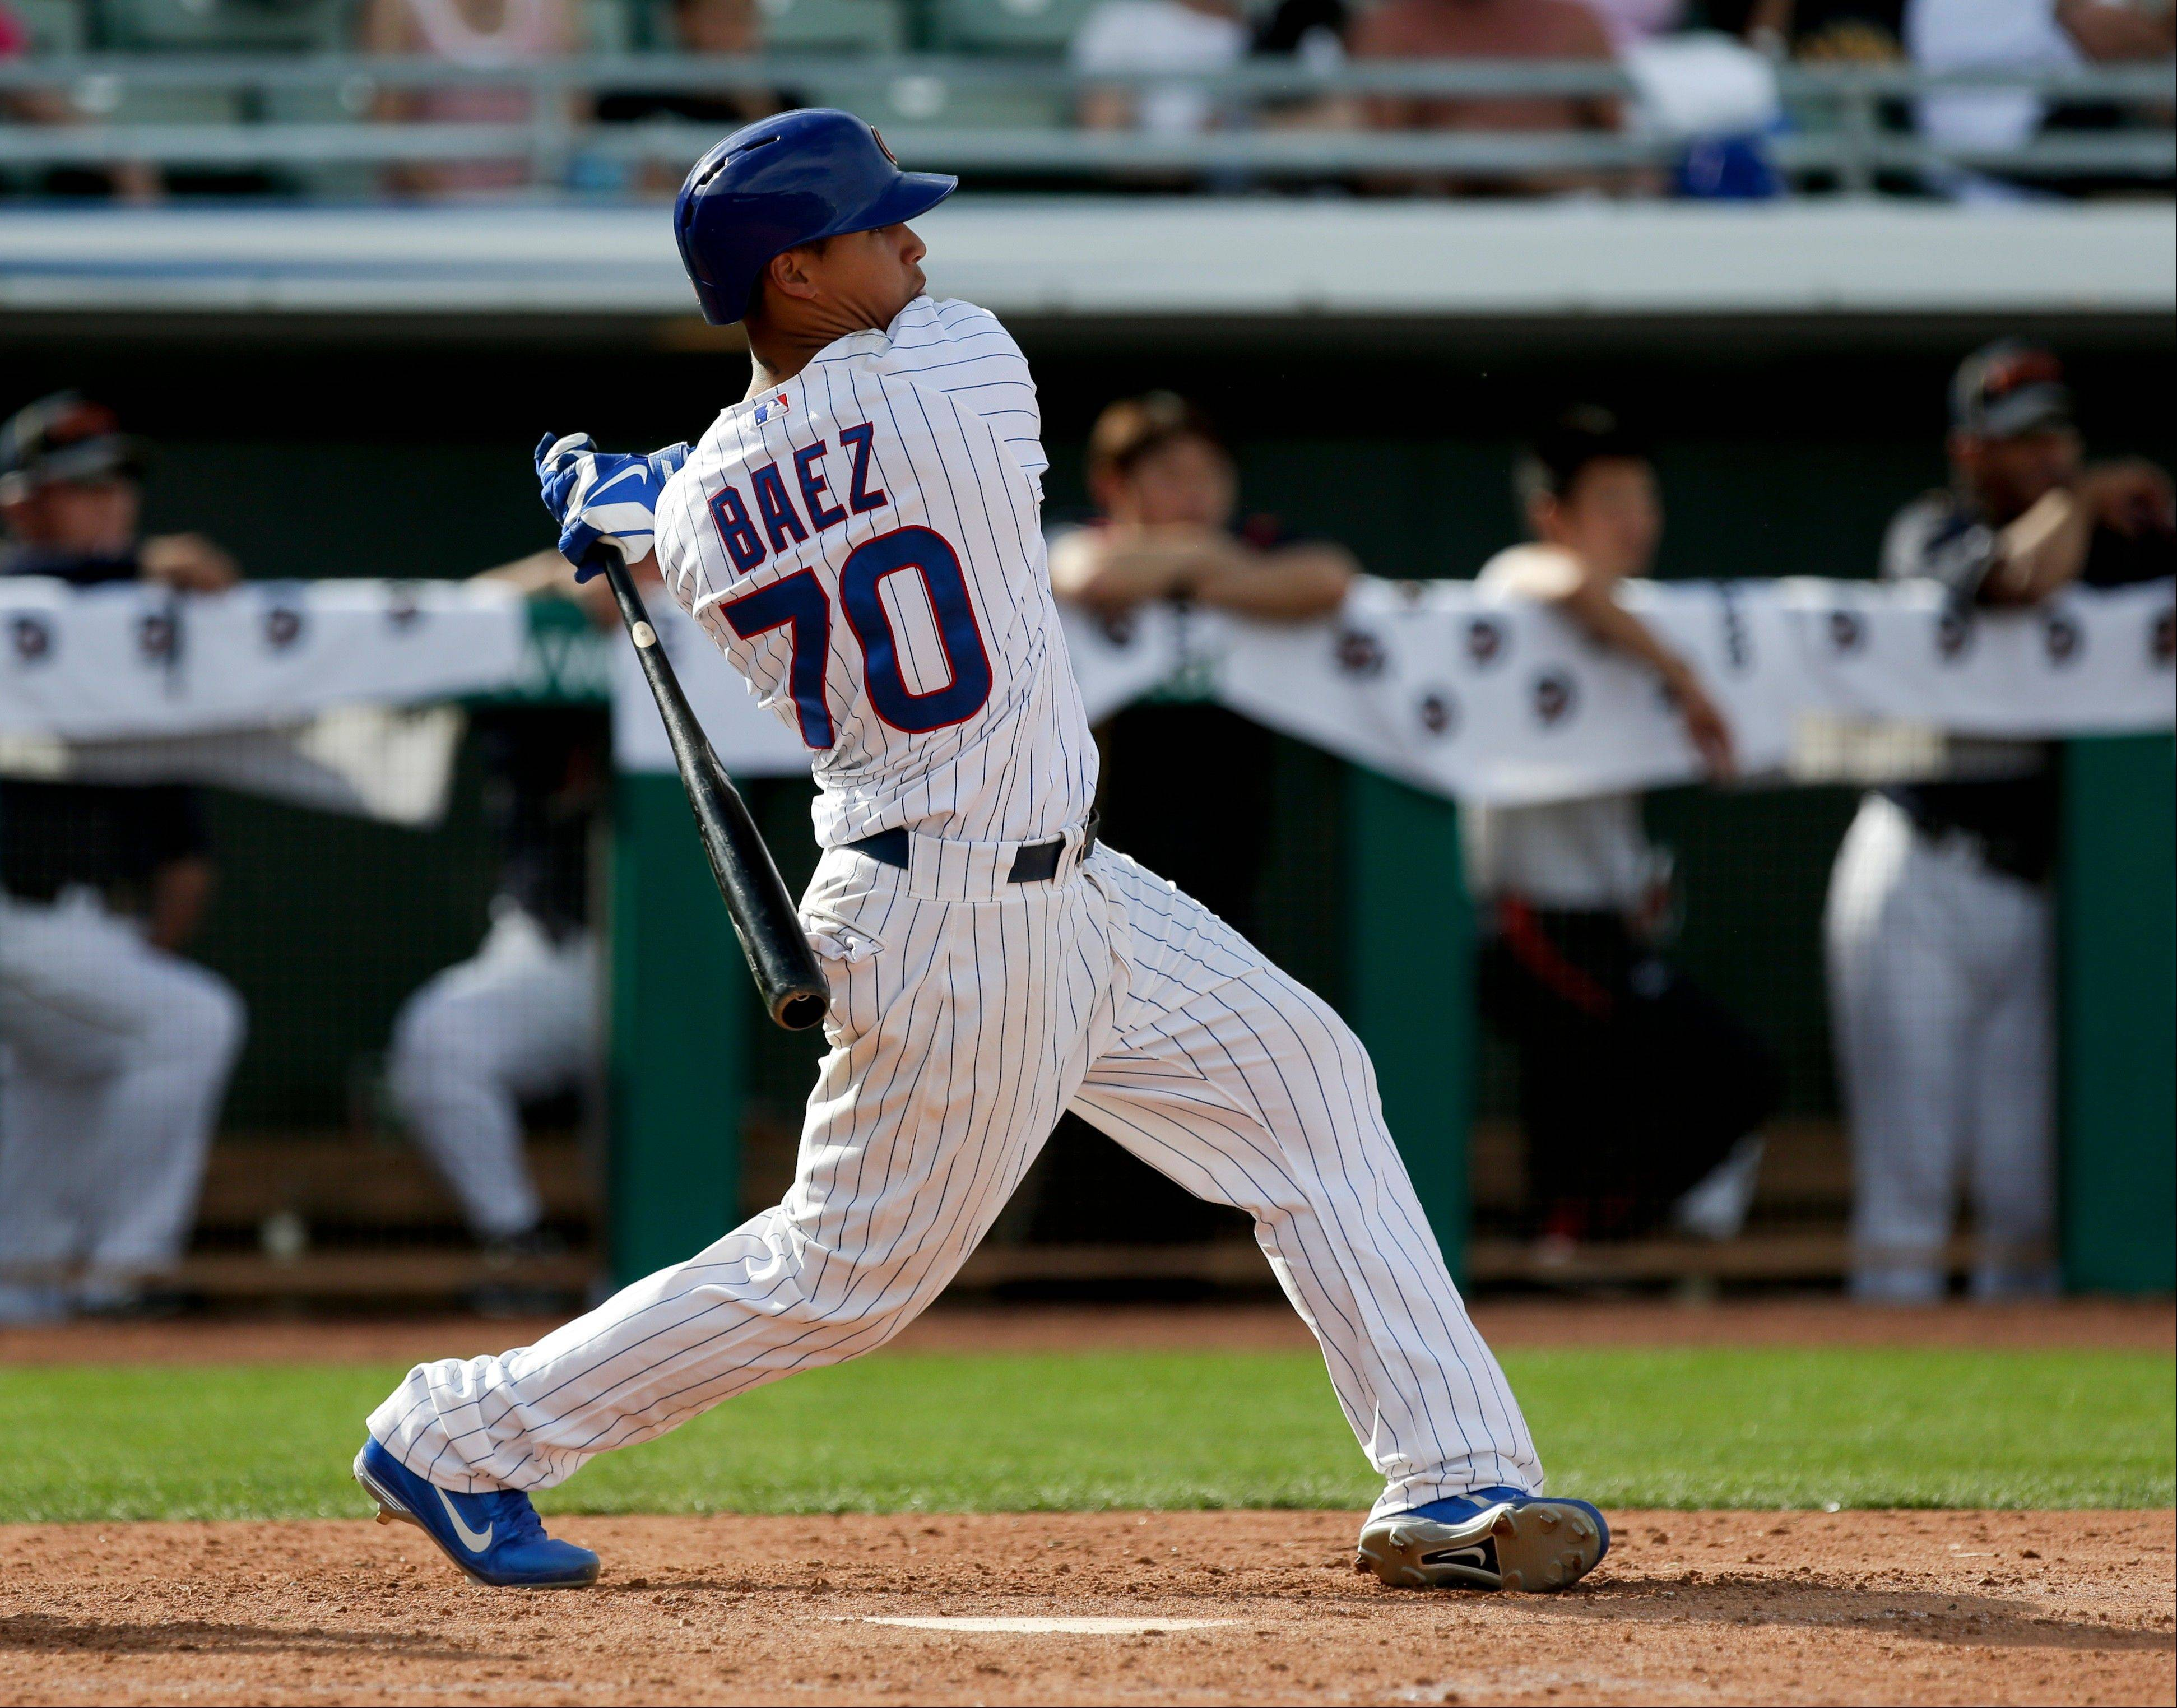 Cubs prospect Javier Baez, a shortstop with power by trade, will get a look-see at other positions during spring training and at Class AAA Iowa this year.